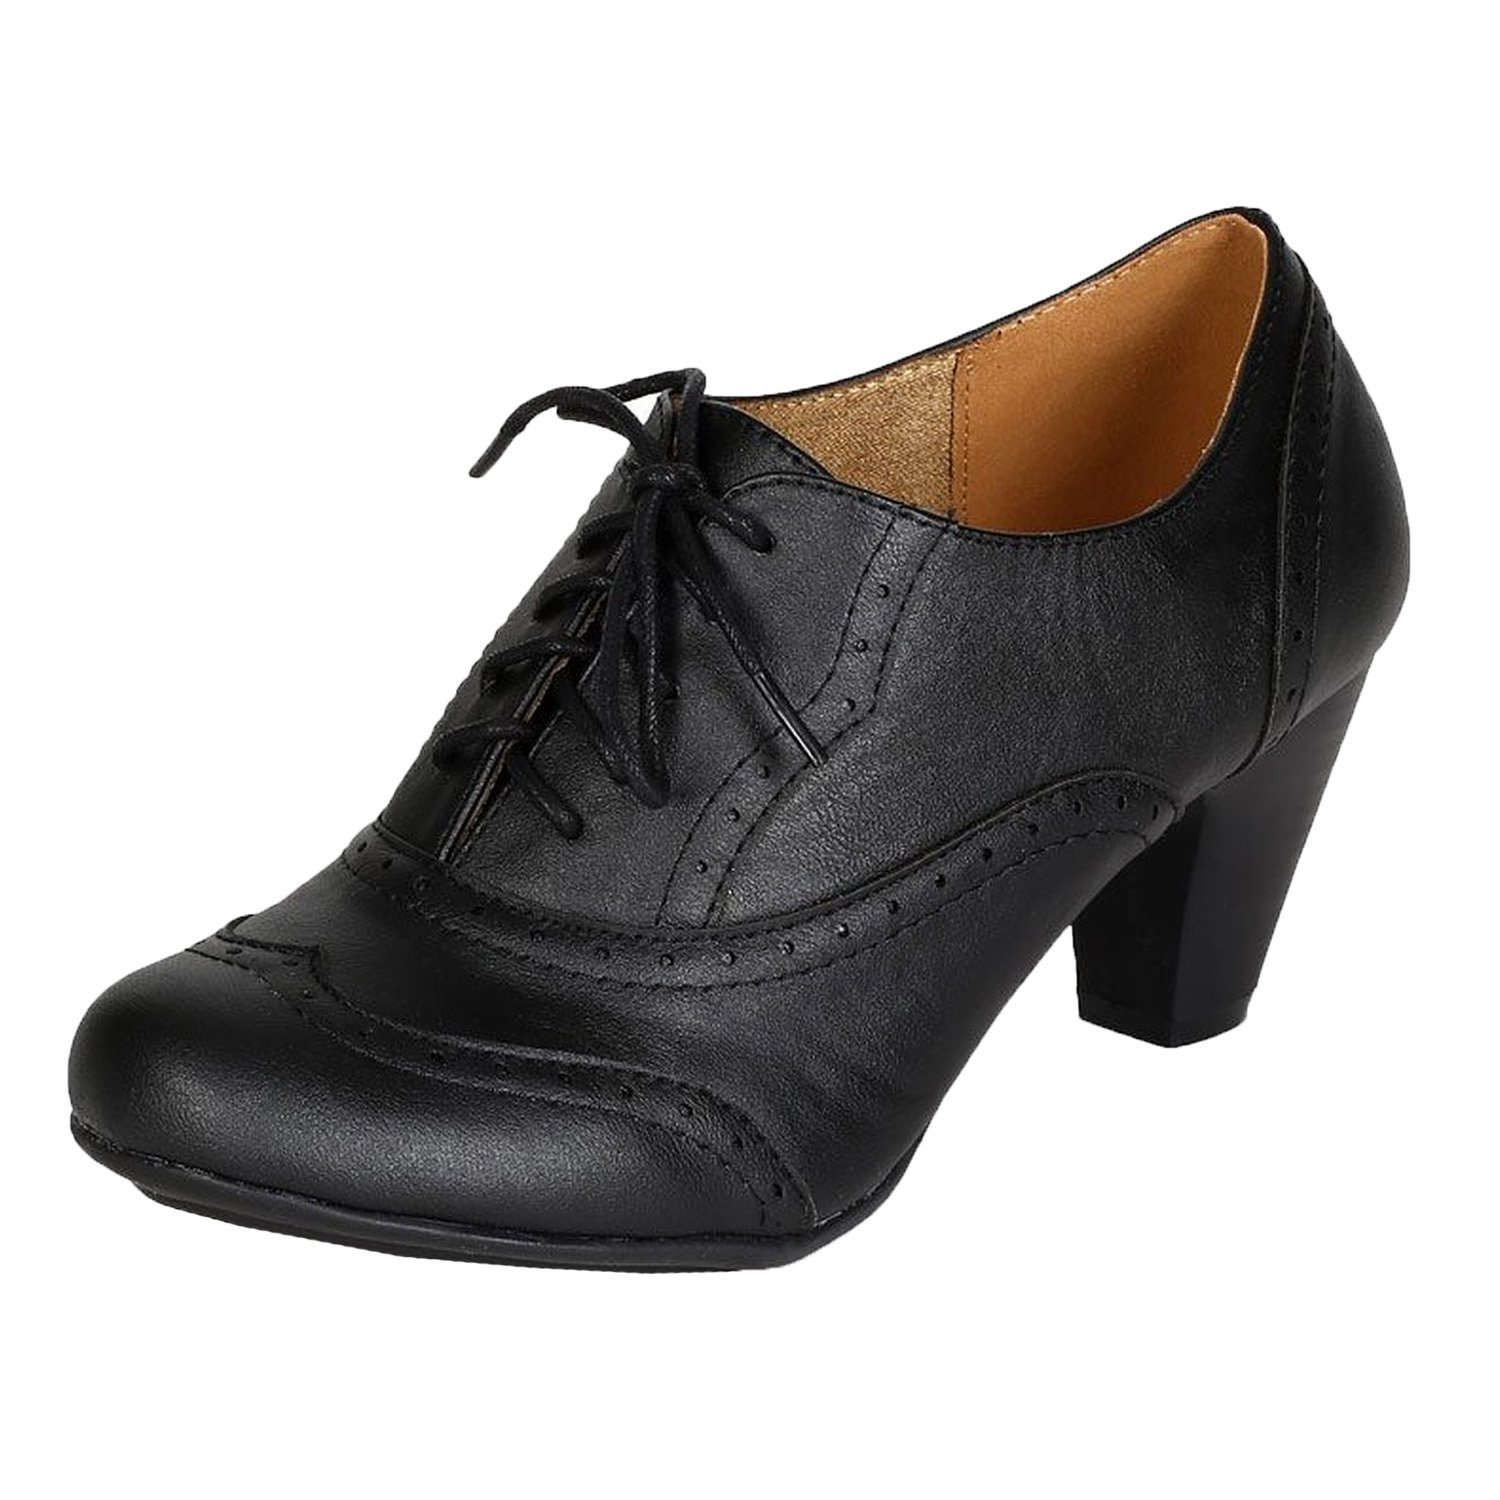 Vintage Style Shoes, Vintage Inspired Shoes Lace Up Oxford Chunky Heel Bootie $21.99 AT vintagedancer.com